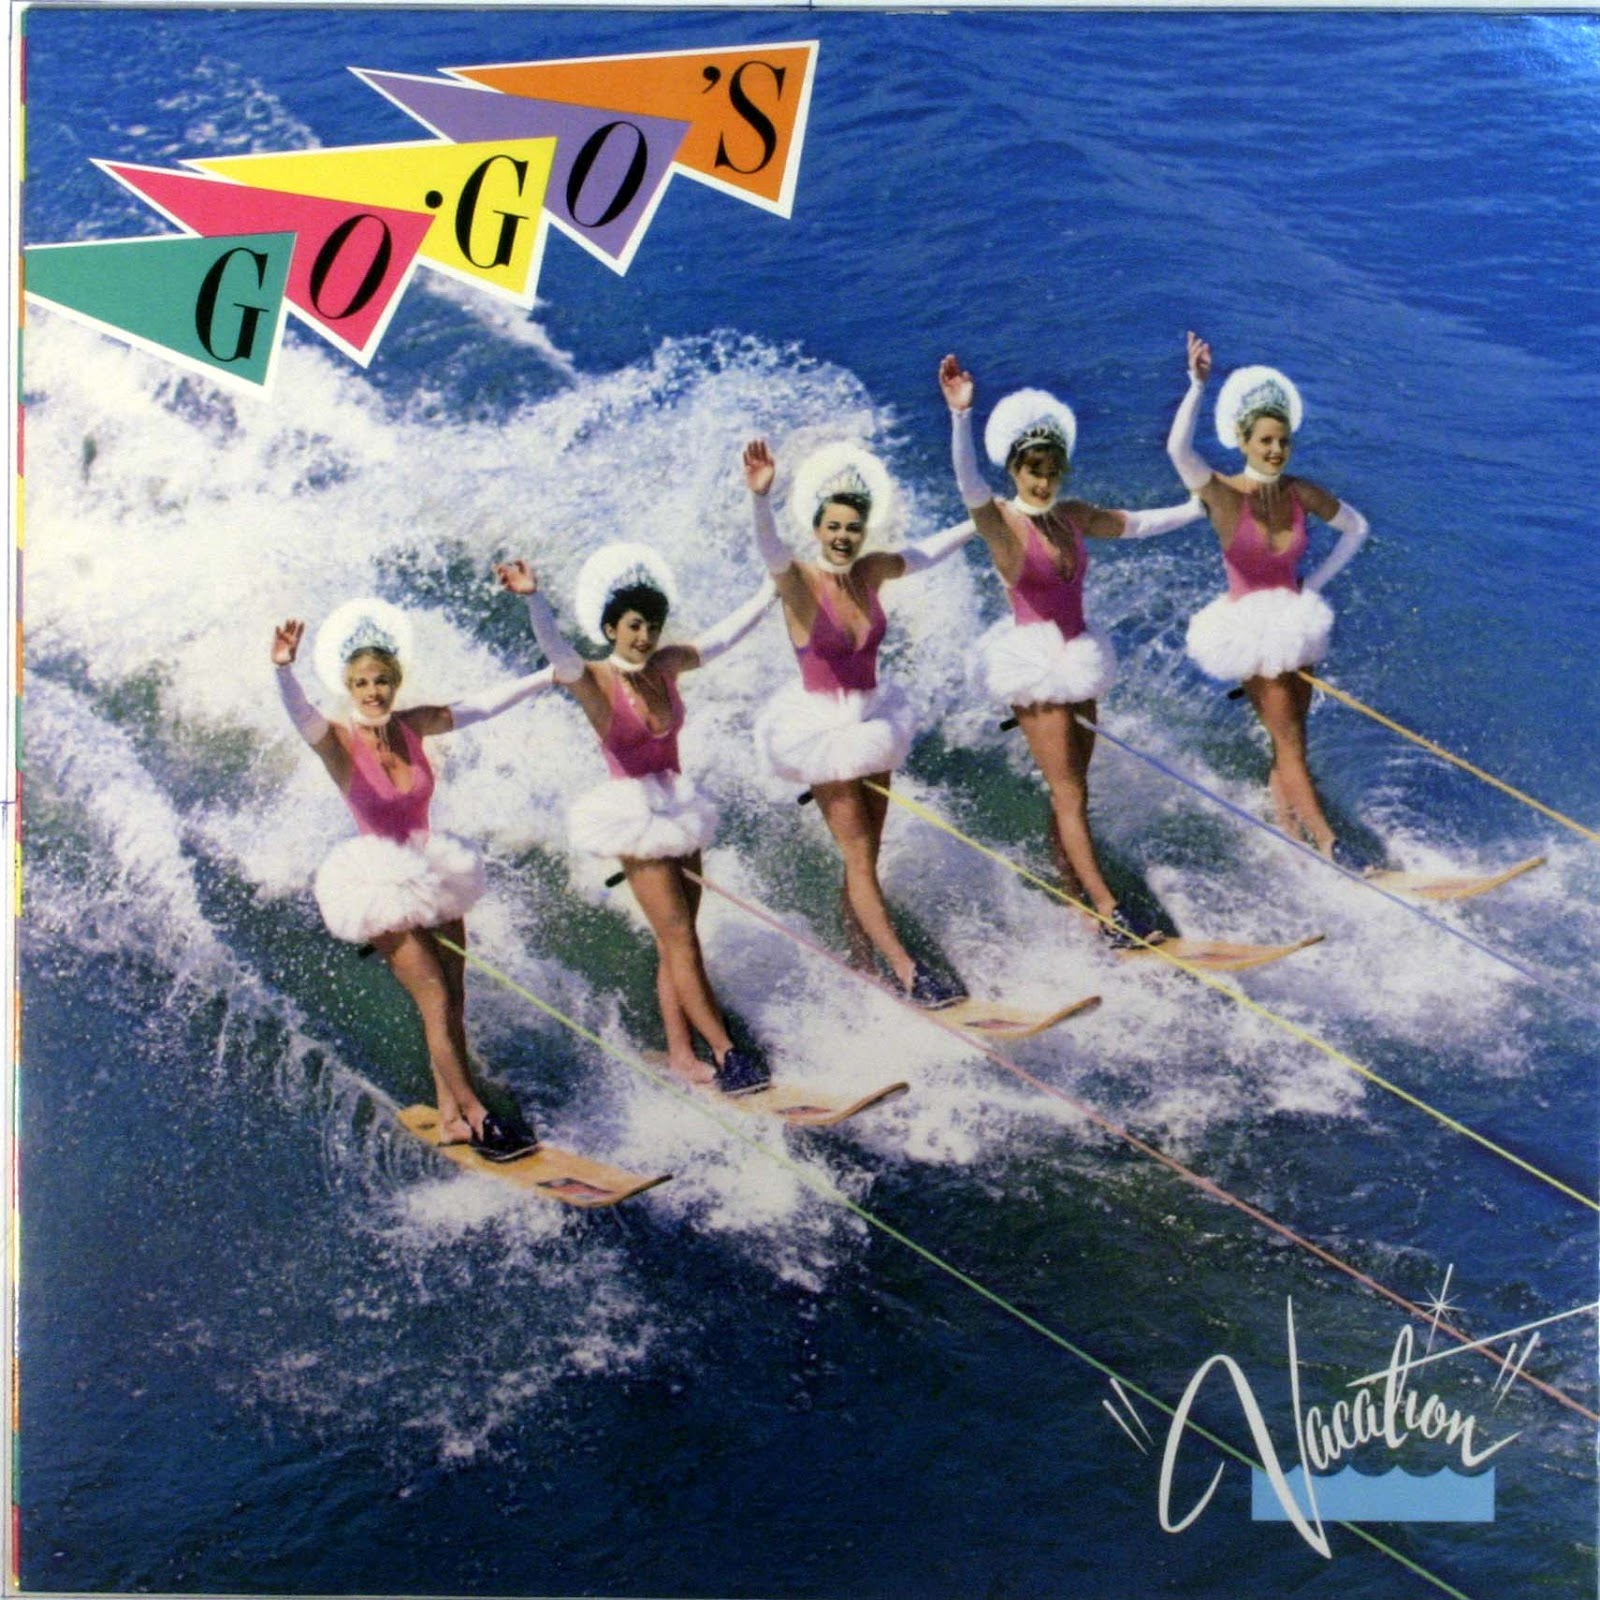 Vacation by The Go-Go's - Sunshine + Palm Trees Playlist | Any Happy Little Thoughts